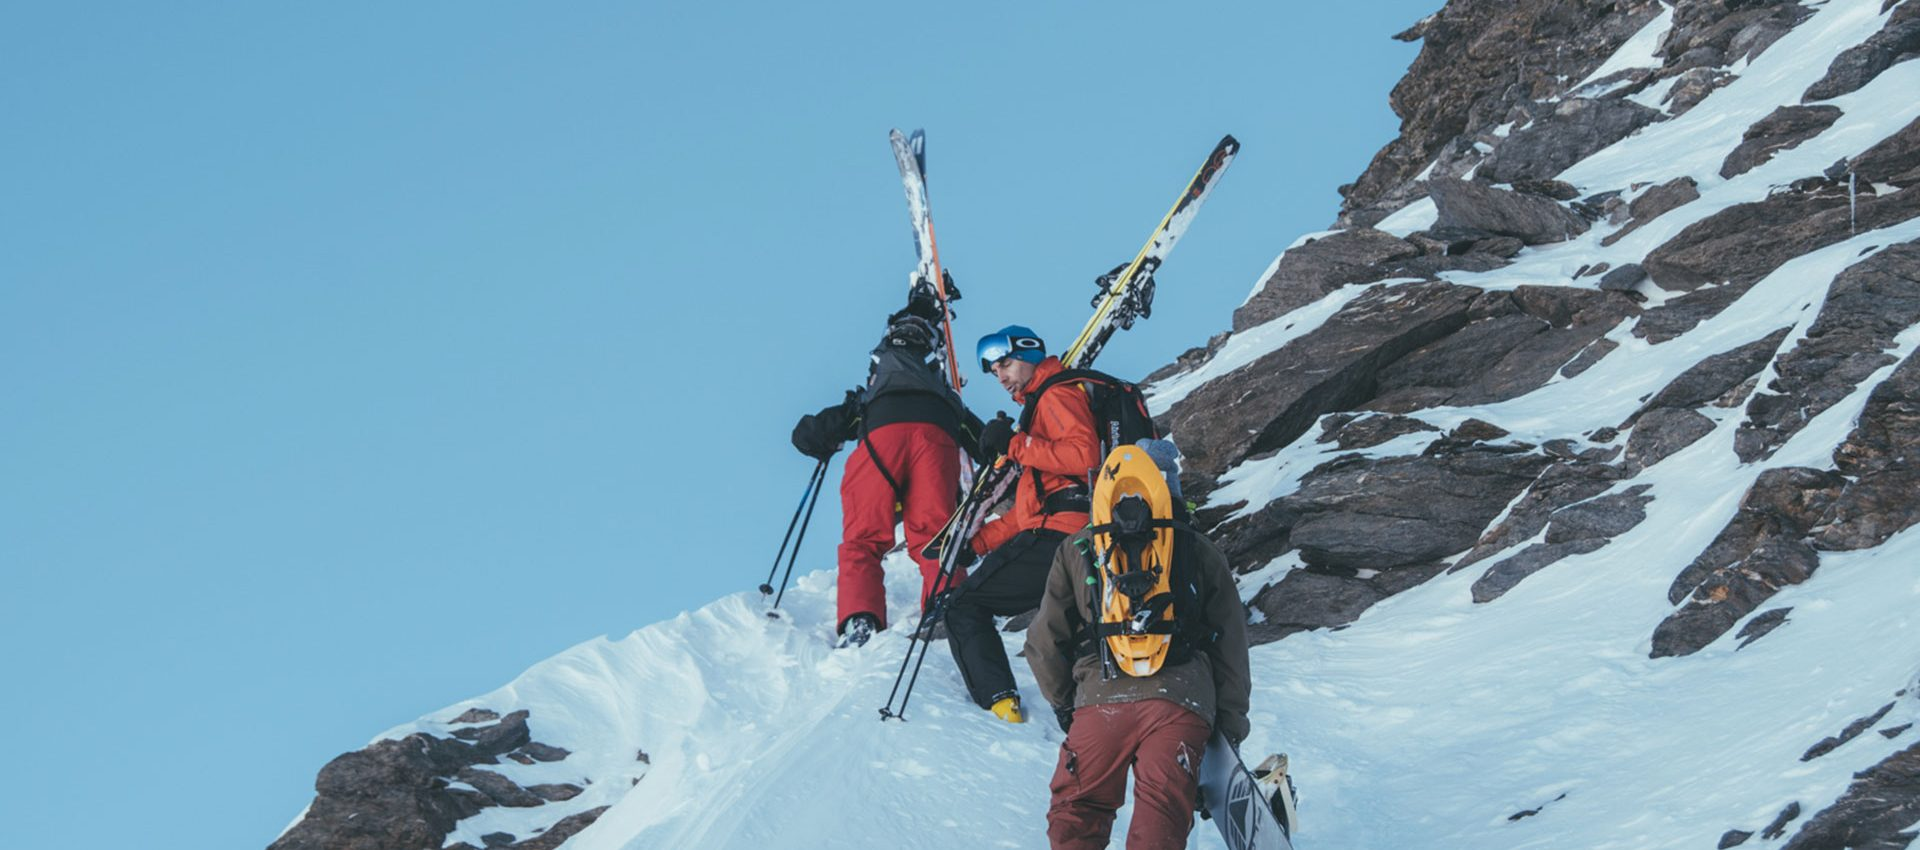 Ever rock climbed in ski gear ? For the advanced riders the local guides will offer more challenging routes.